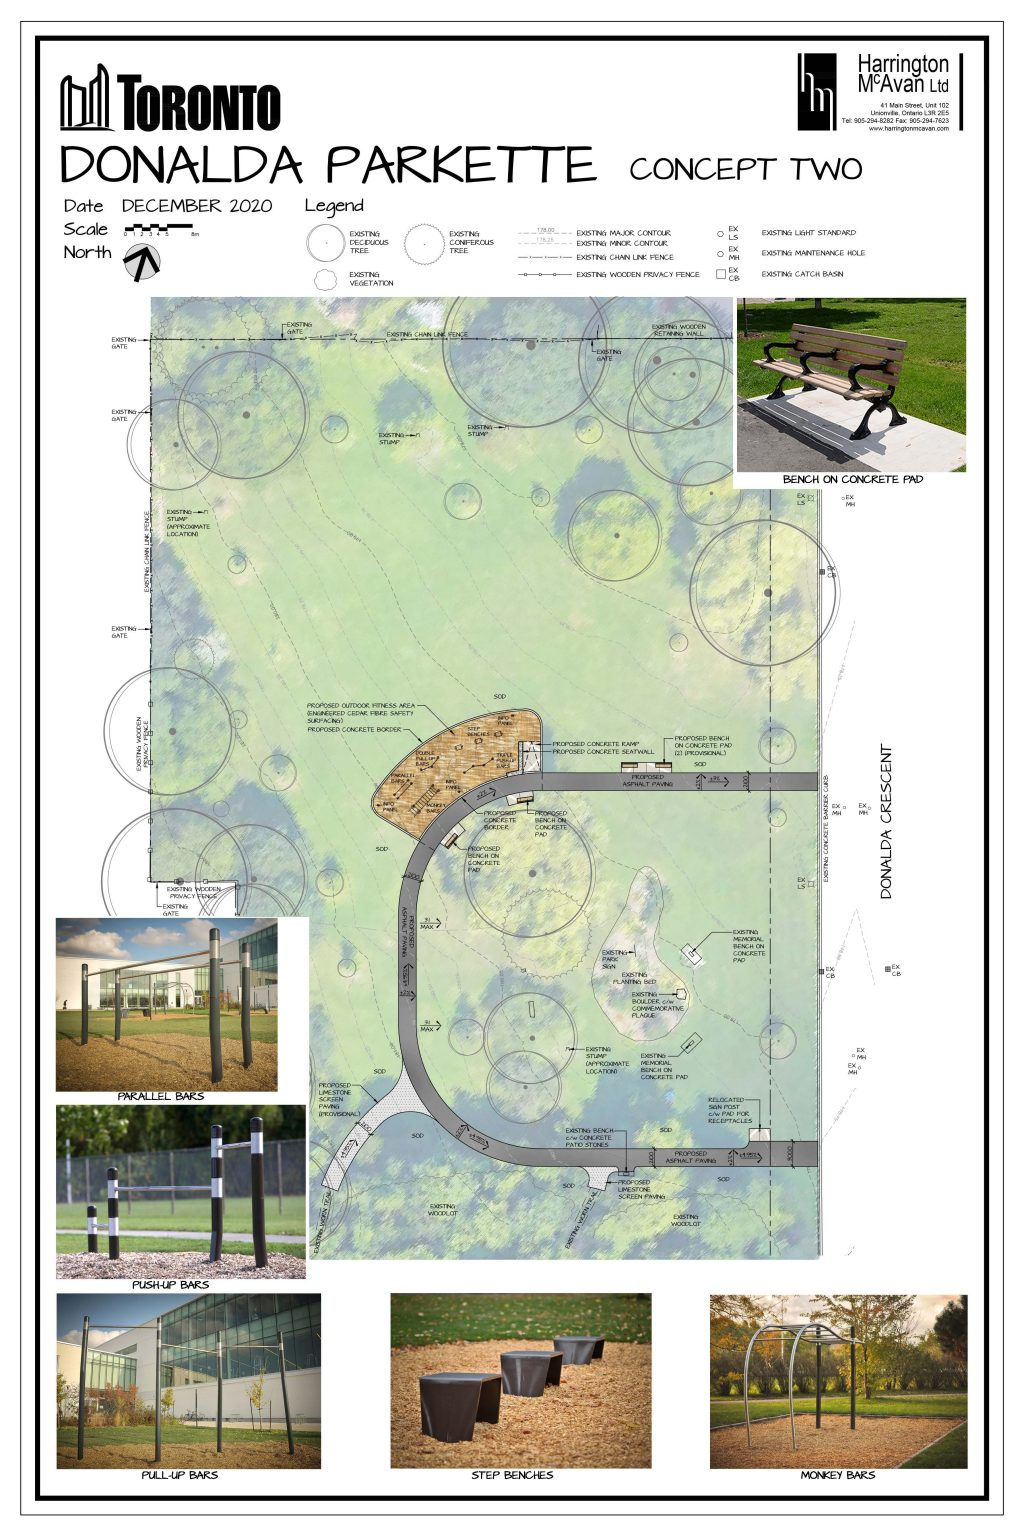 An image of the design plan for the option 2 fitness circuit for Donalda Park. This option feature an asphalt trail loop in the open lawn area of the park, and additional seating. The asphalt multi-use trail is an square shape in the open lawn area of the park. The plan also includes one large outdoor fitness station with Engineered Wood Fibre surface and multiple seating along the path. The image also illustrates the existing plantings and trees in the park and surrounding wooded area. The image includes renderings of the proposed fitness equipment, which includes parallel bars, pull-up bars, step benches, monkey bars and push up bars.